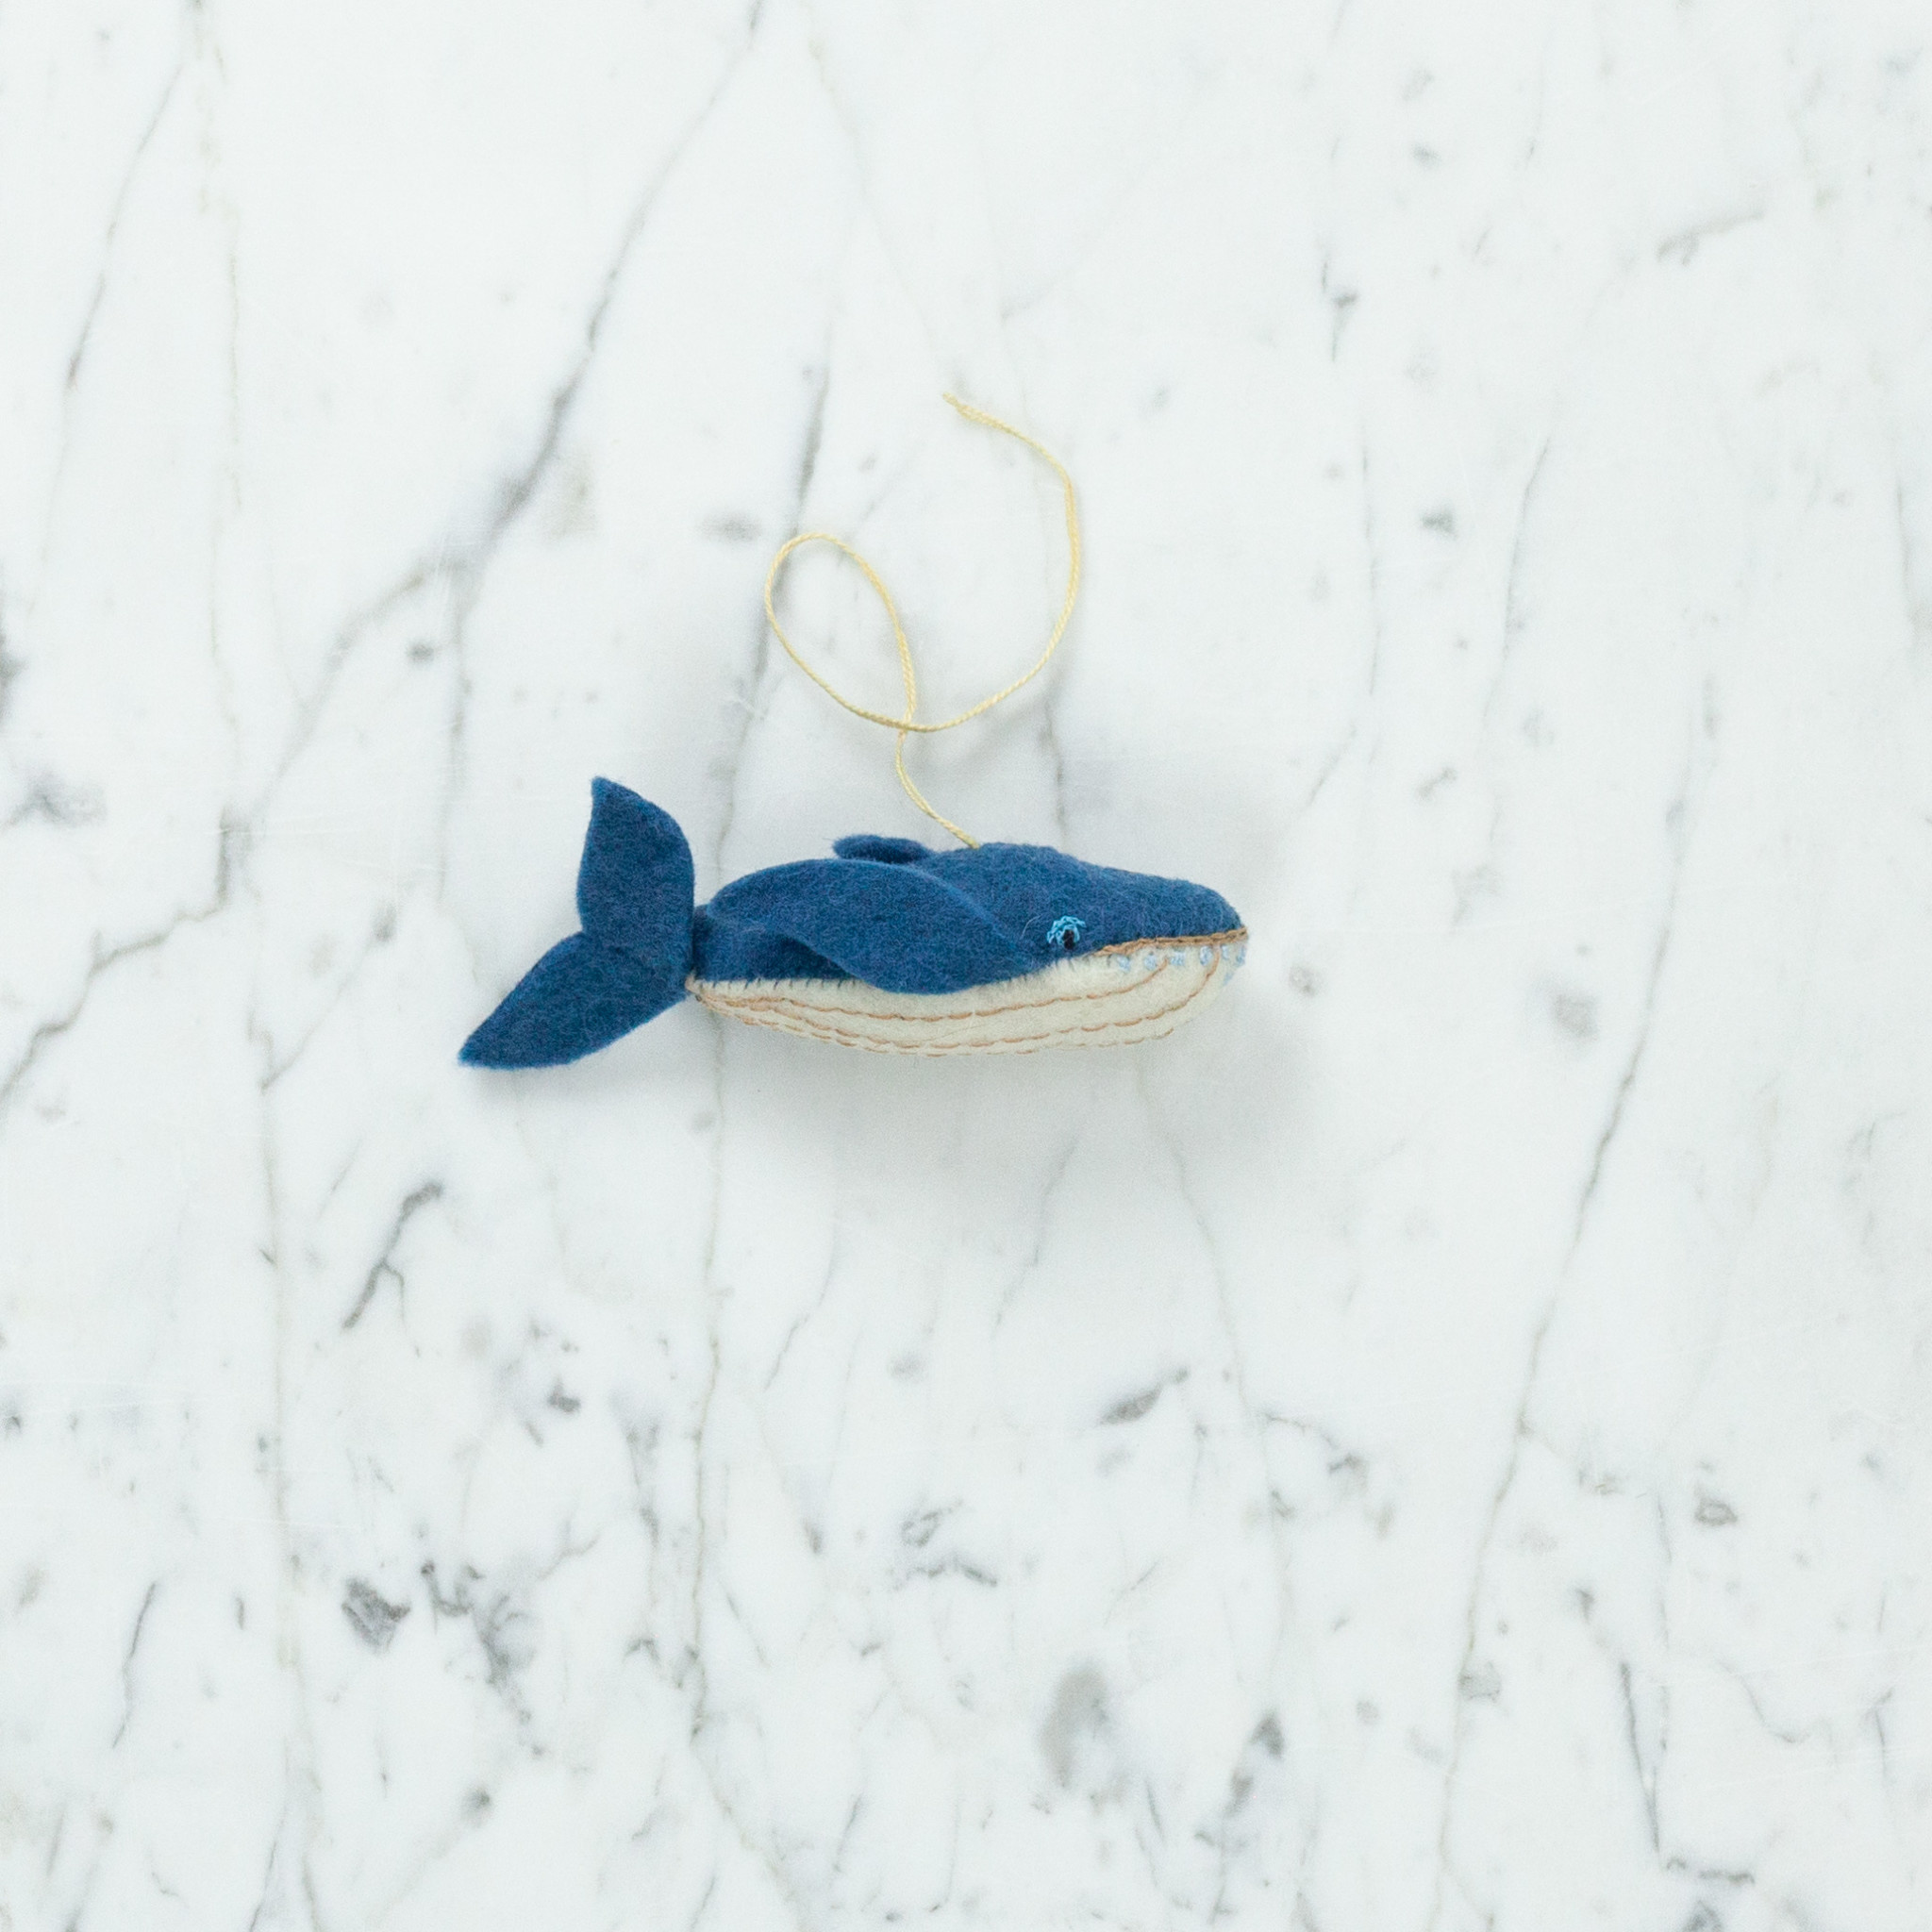 Hand Felted Little Hump Back Whale Ornament - Teal